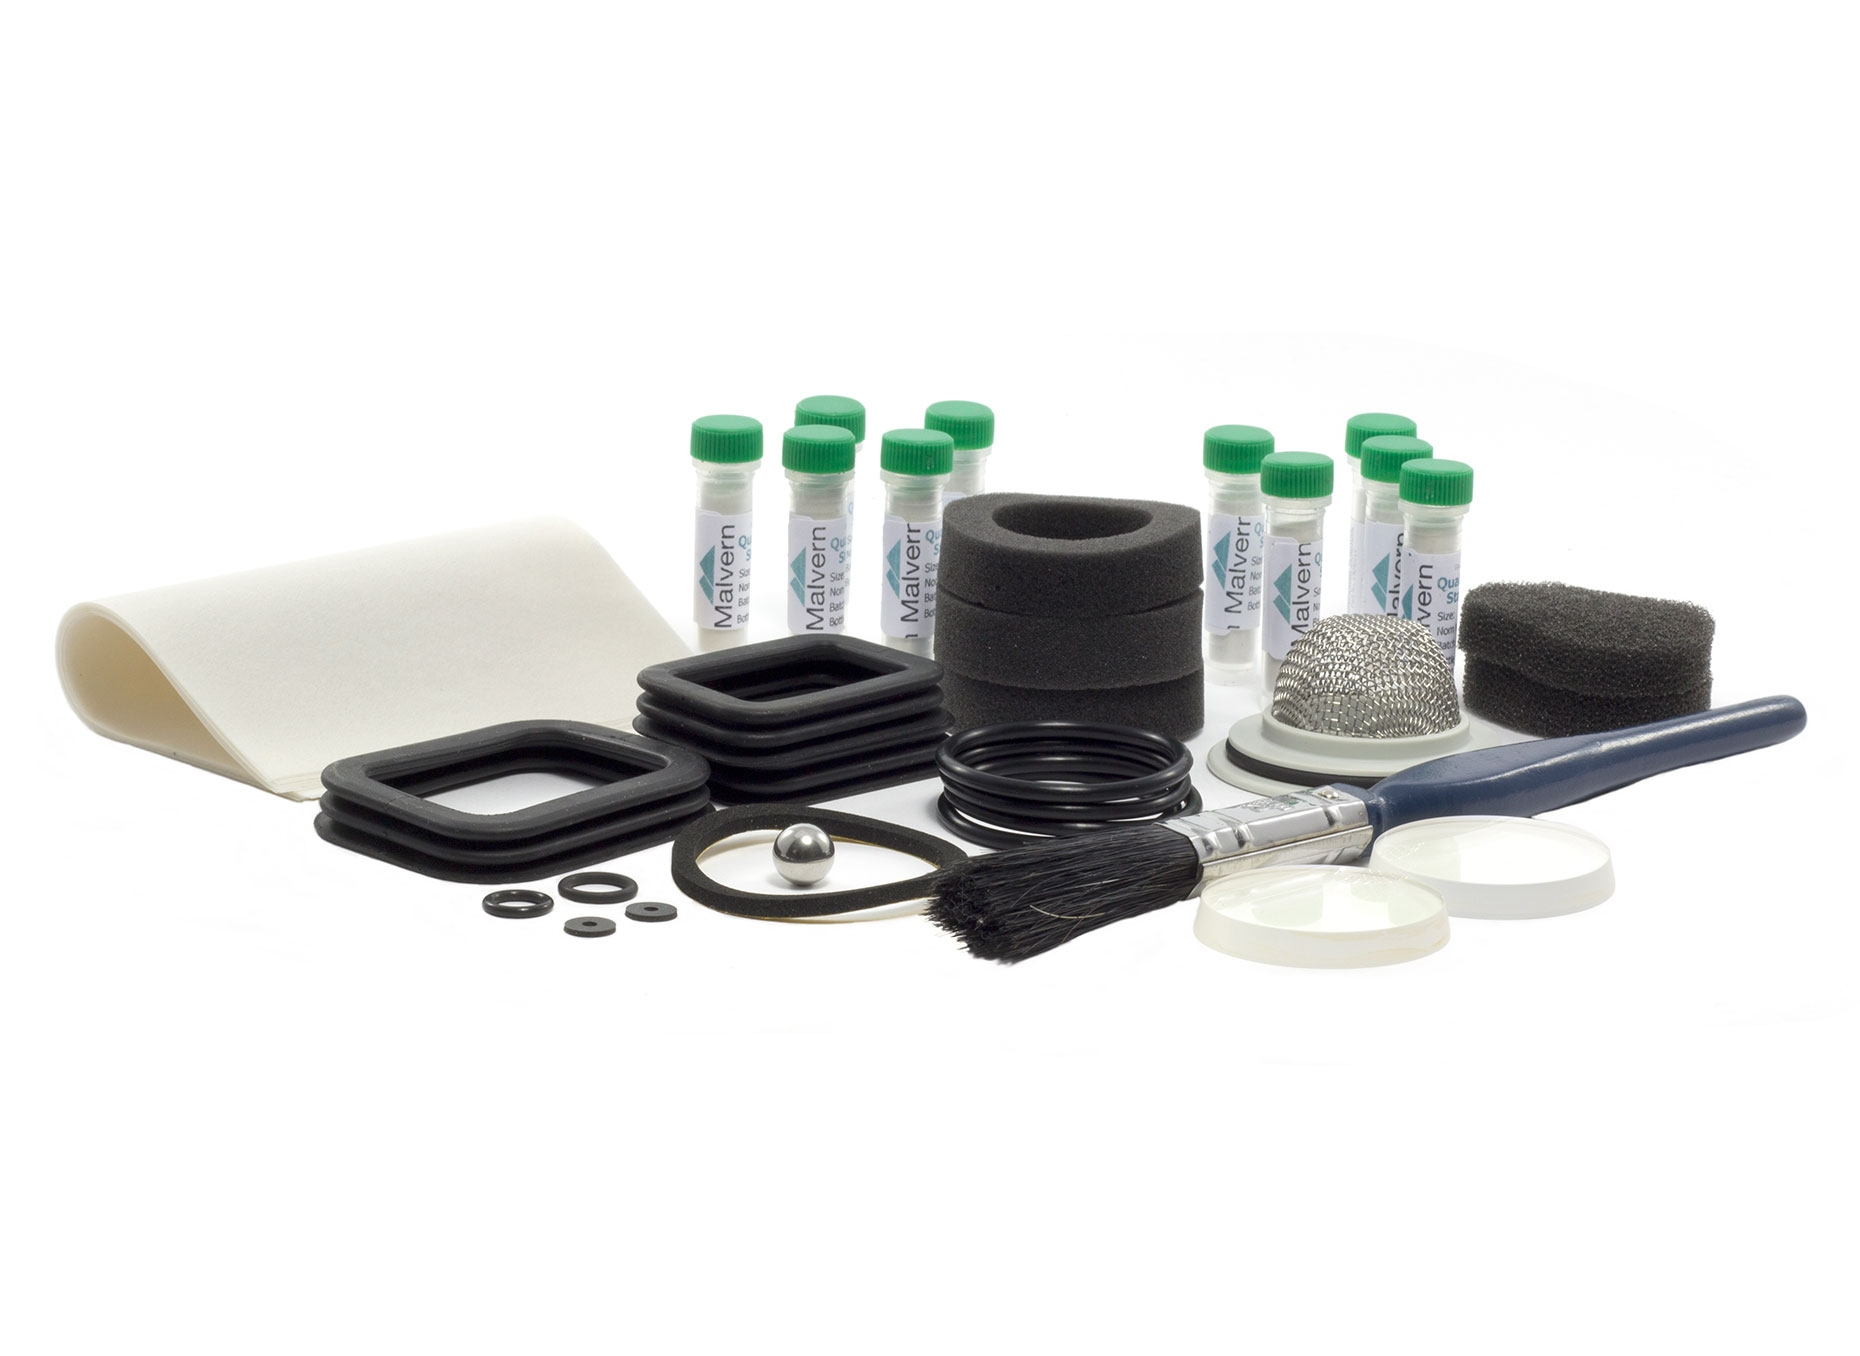 Aero S Consumables Kit by Malvern Panalytical thumbnail